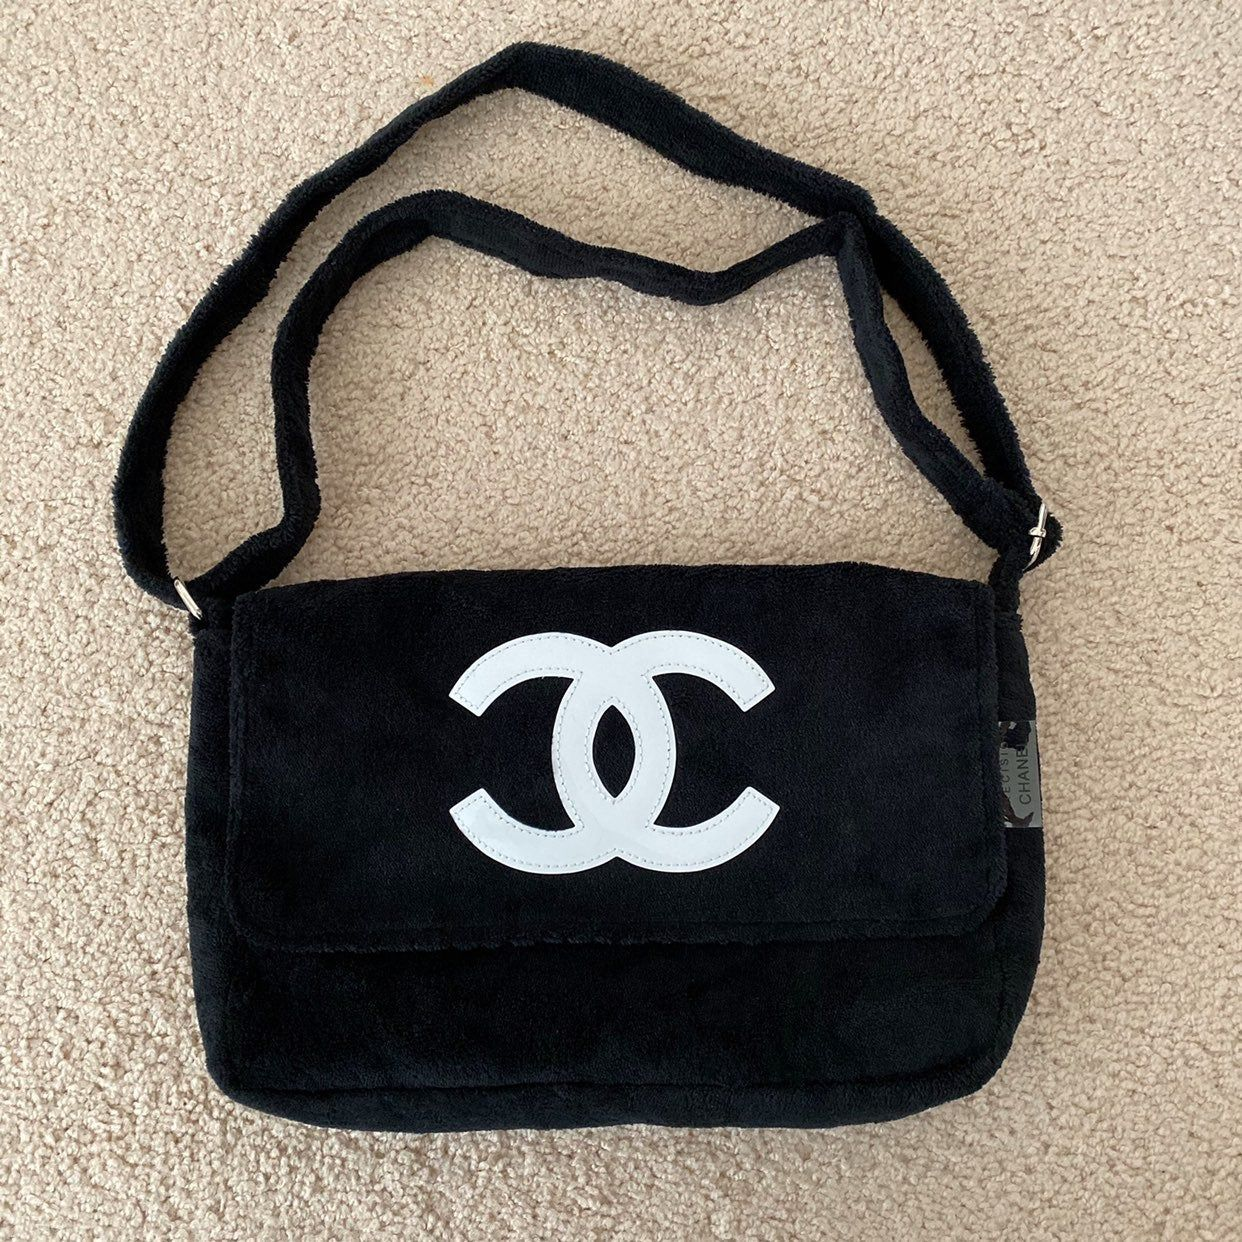 Vip Bag From Chanel Towel Material Bts V Wore It As Well Color Is Black Brand New Channel Bags Bags Messanger Bag